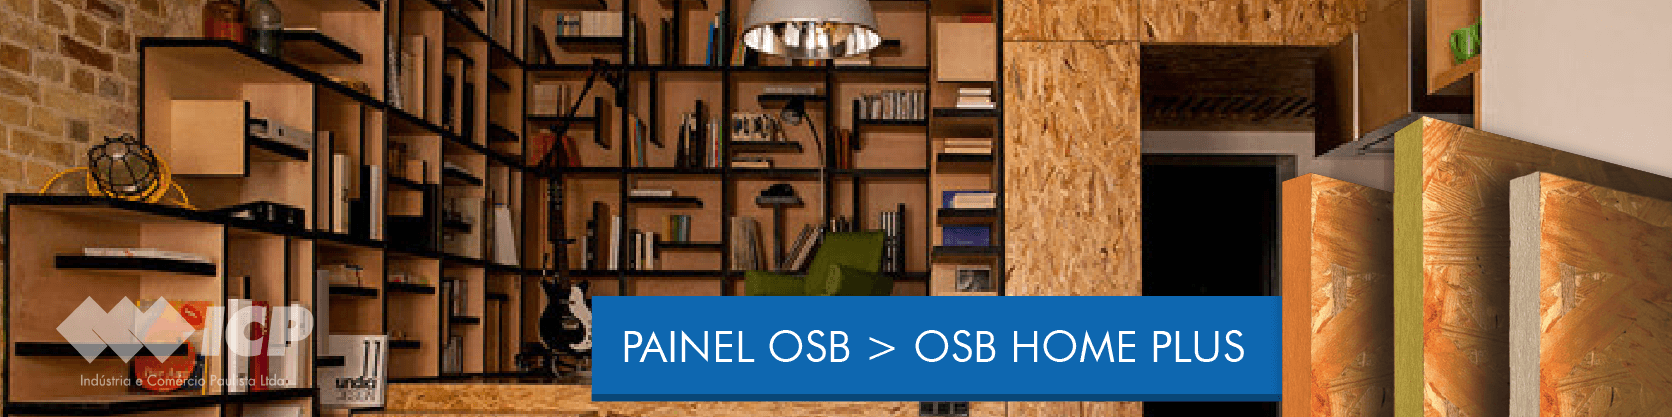 PAINEL OSB